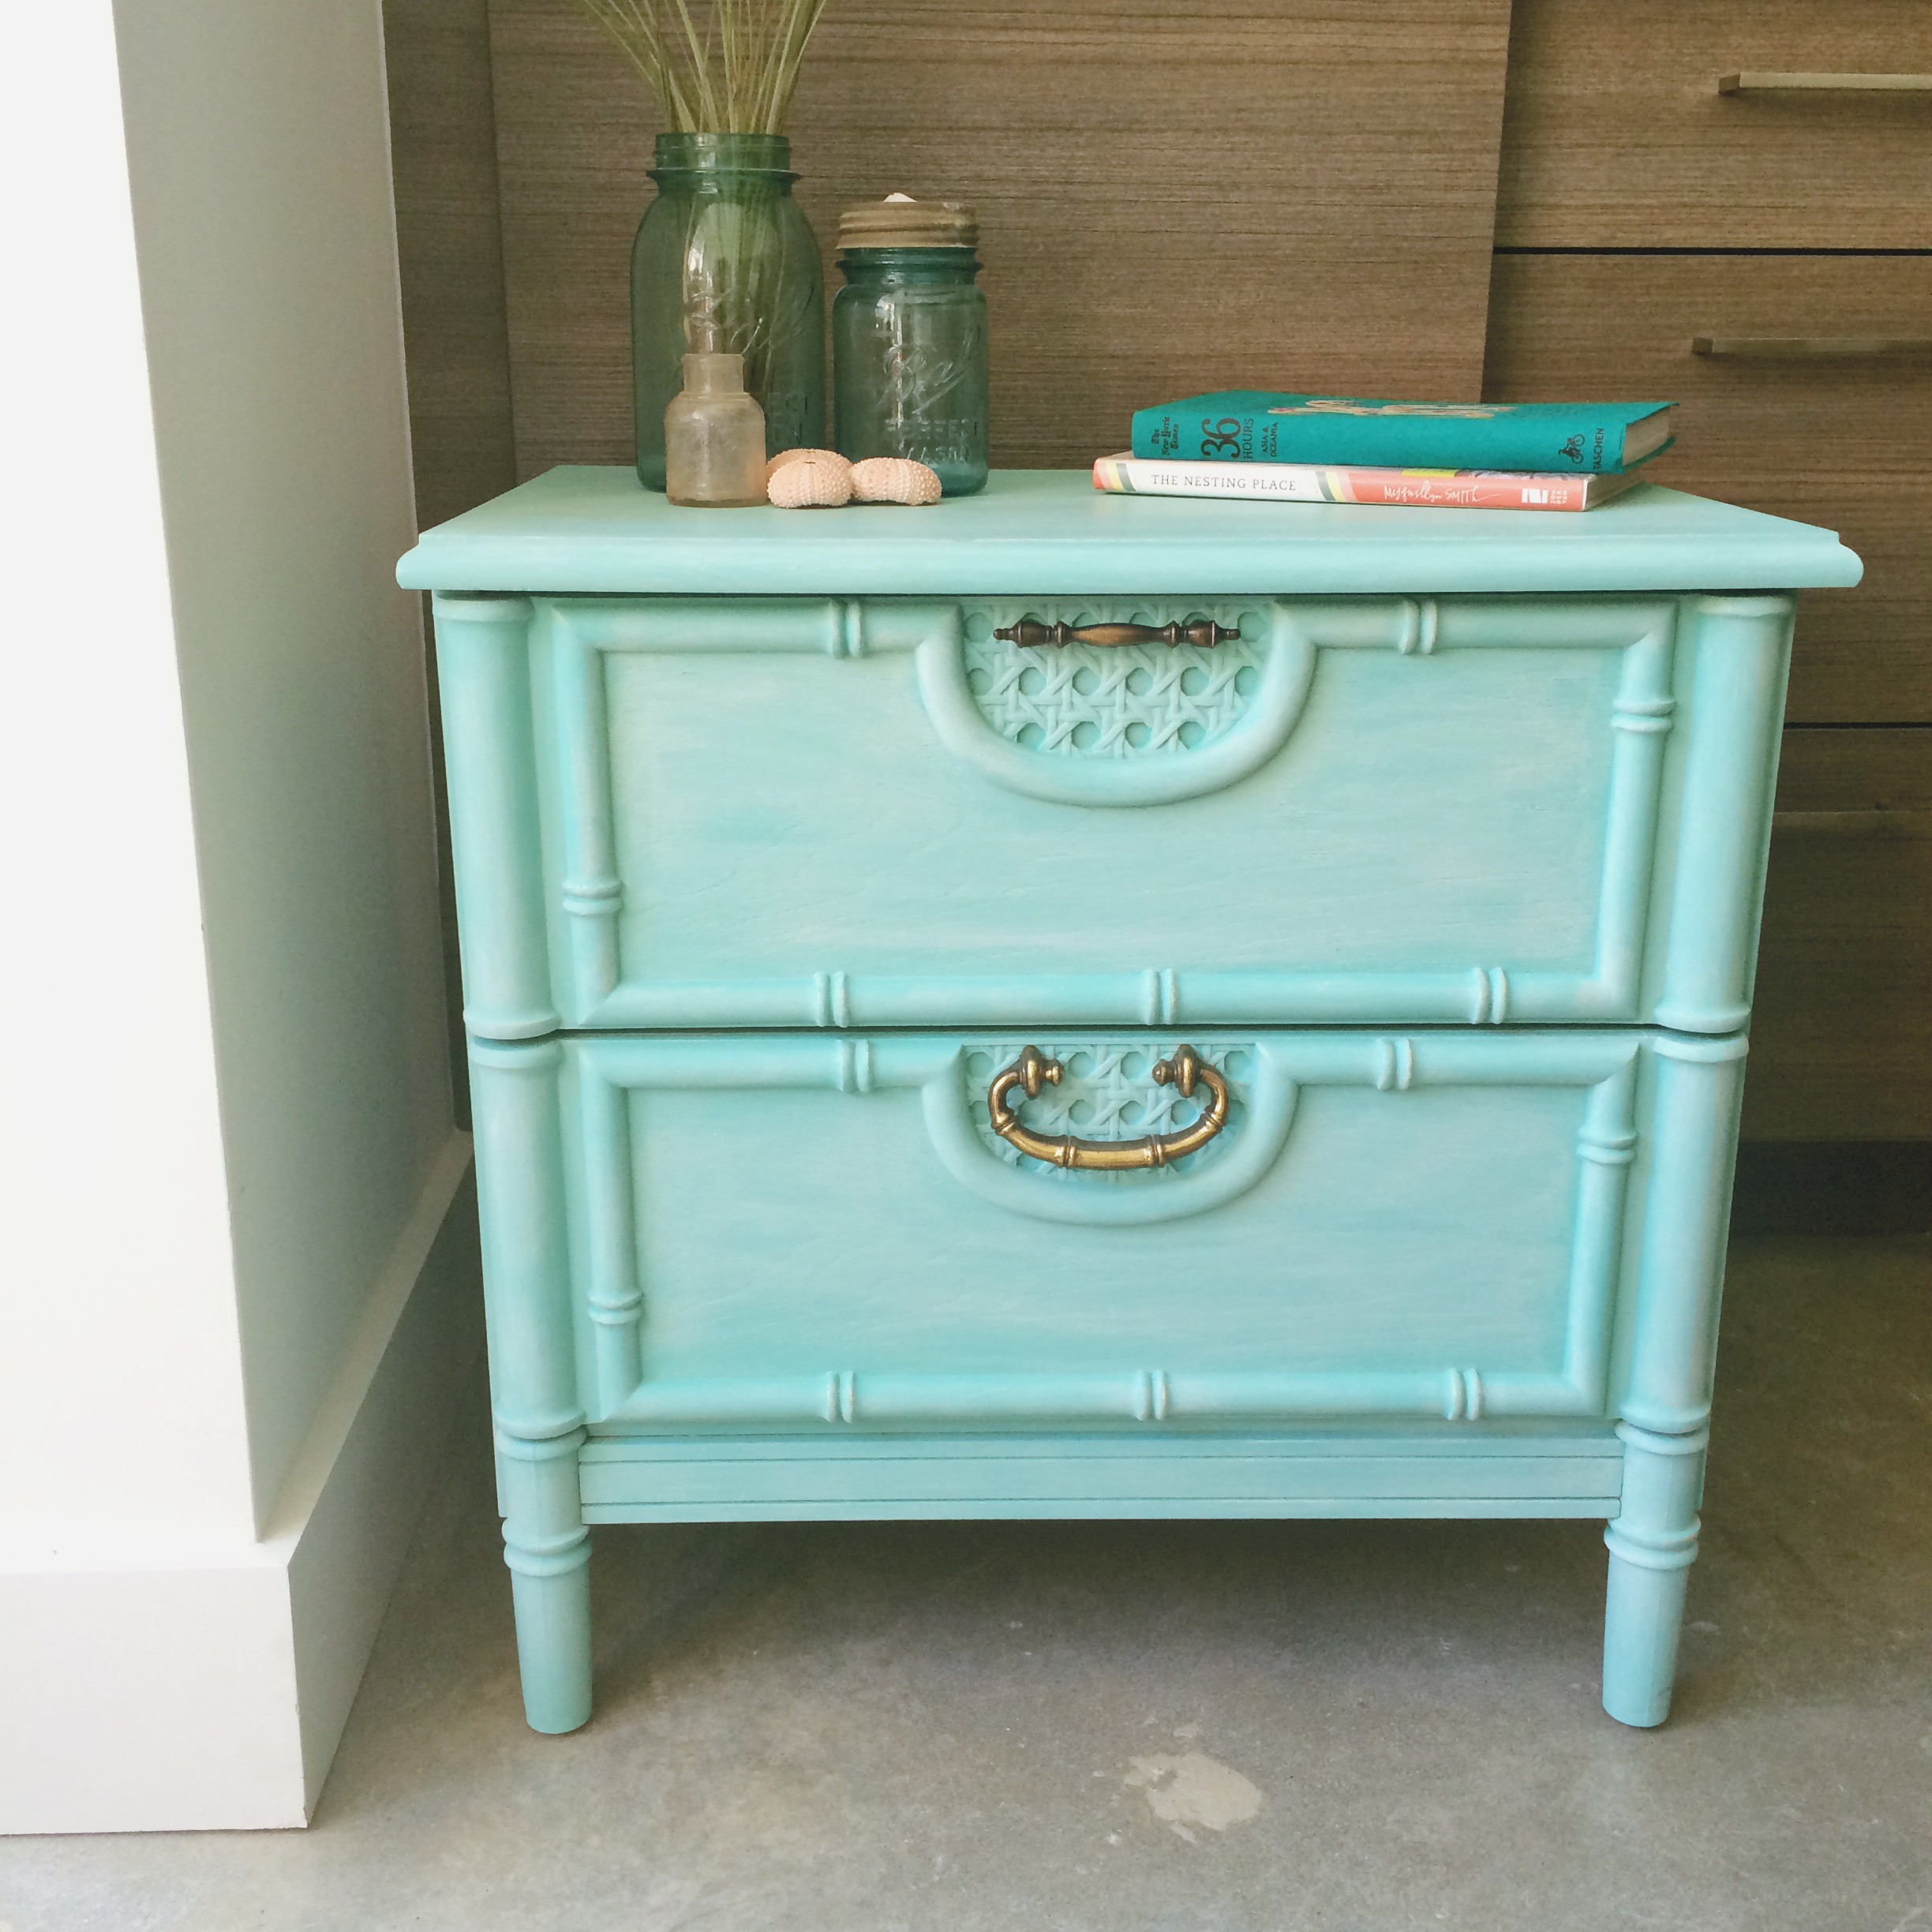 jo-torrijos-a-simpler-design-atlanta-chalk-paint-furniture-turquoise-nightstand-bamboo-4.jpg